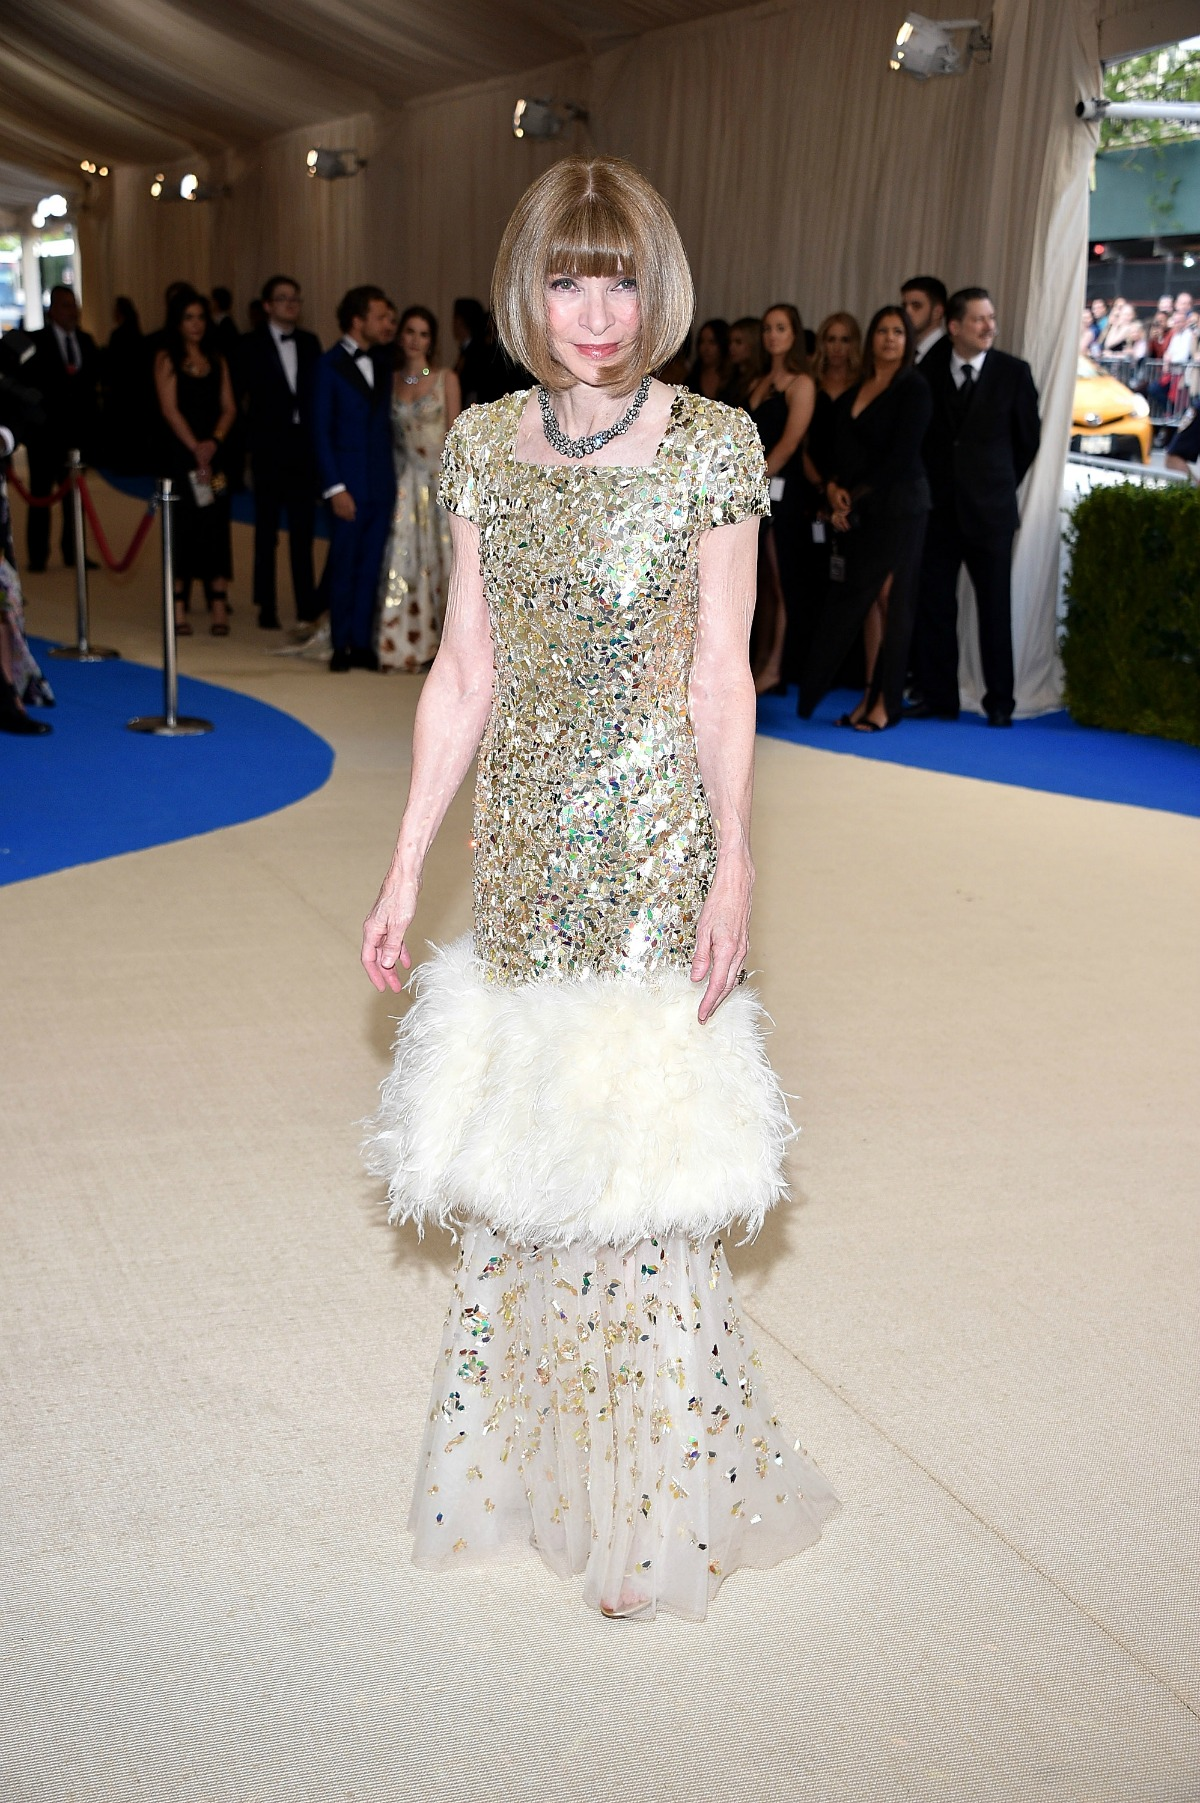 Met Gala 2017 - Highlights | You can visit us at our website, www.essentialhome.eu and check our Pinterest @midcenturyblog to get more #MidCenturyModern inspiration. Met Gala 2017 Met Gala 2017 – Highlights Met Gala 2017 Highlights